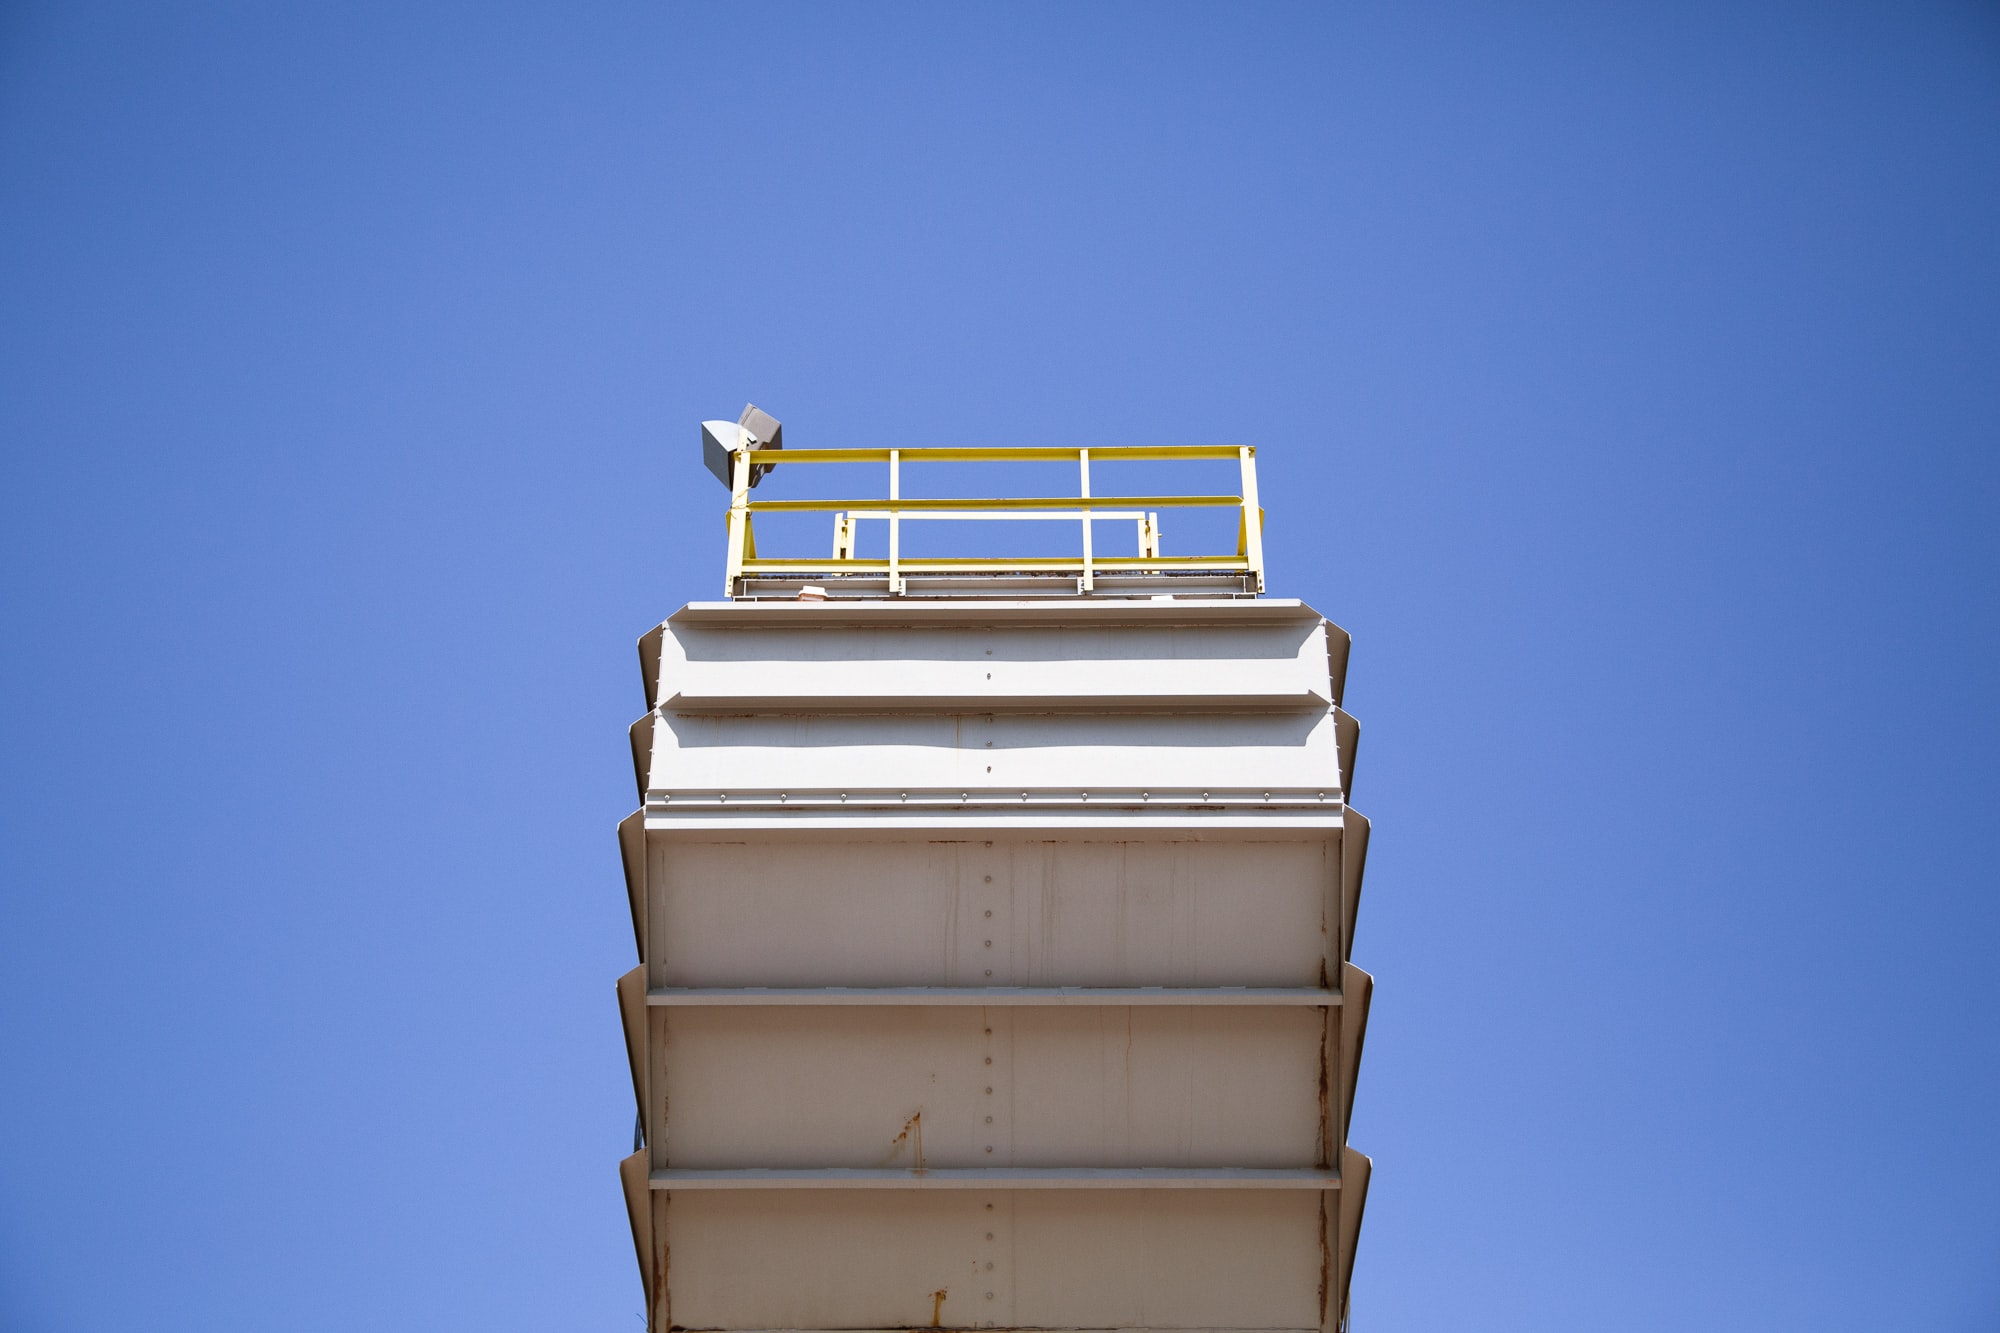 A low-angle shot of a high steel platform against a blue sky